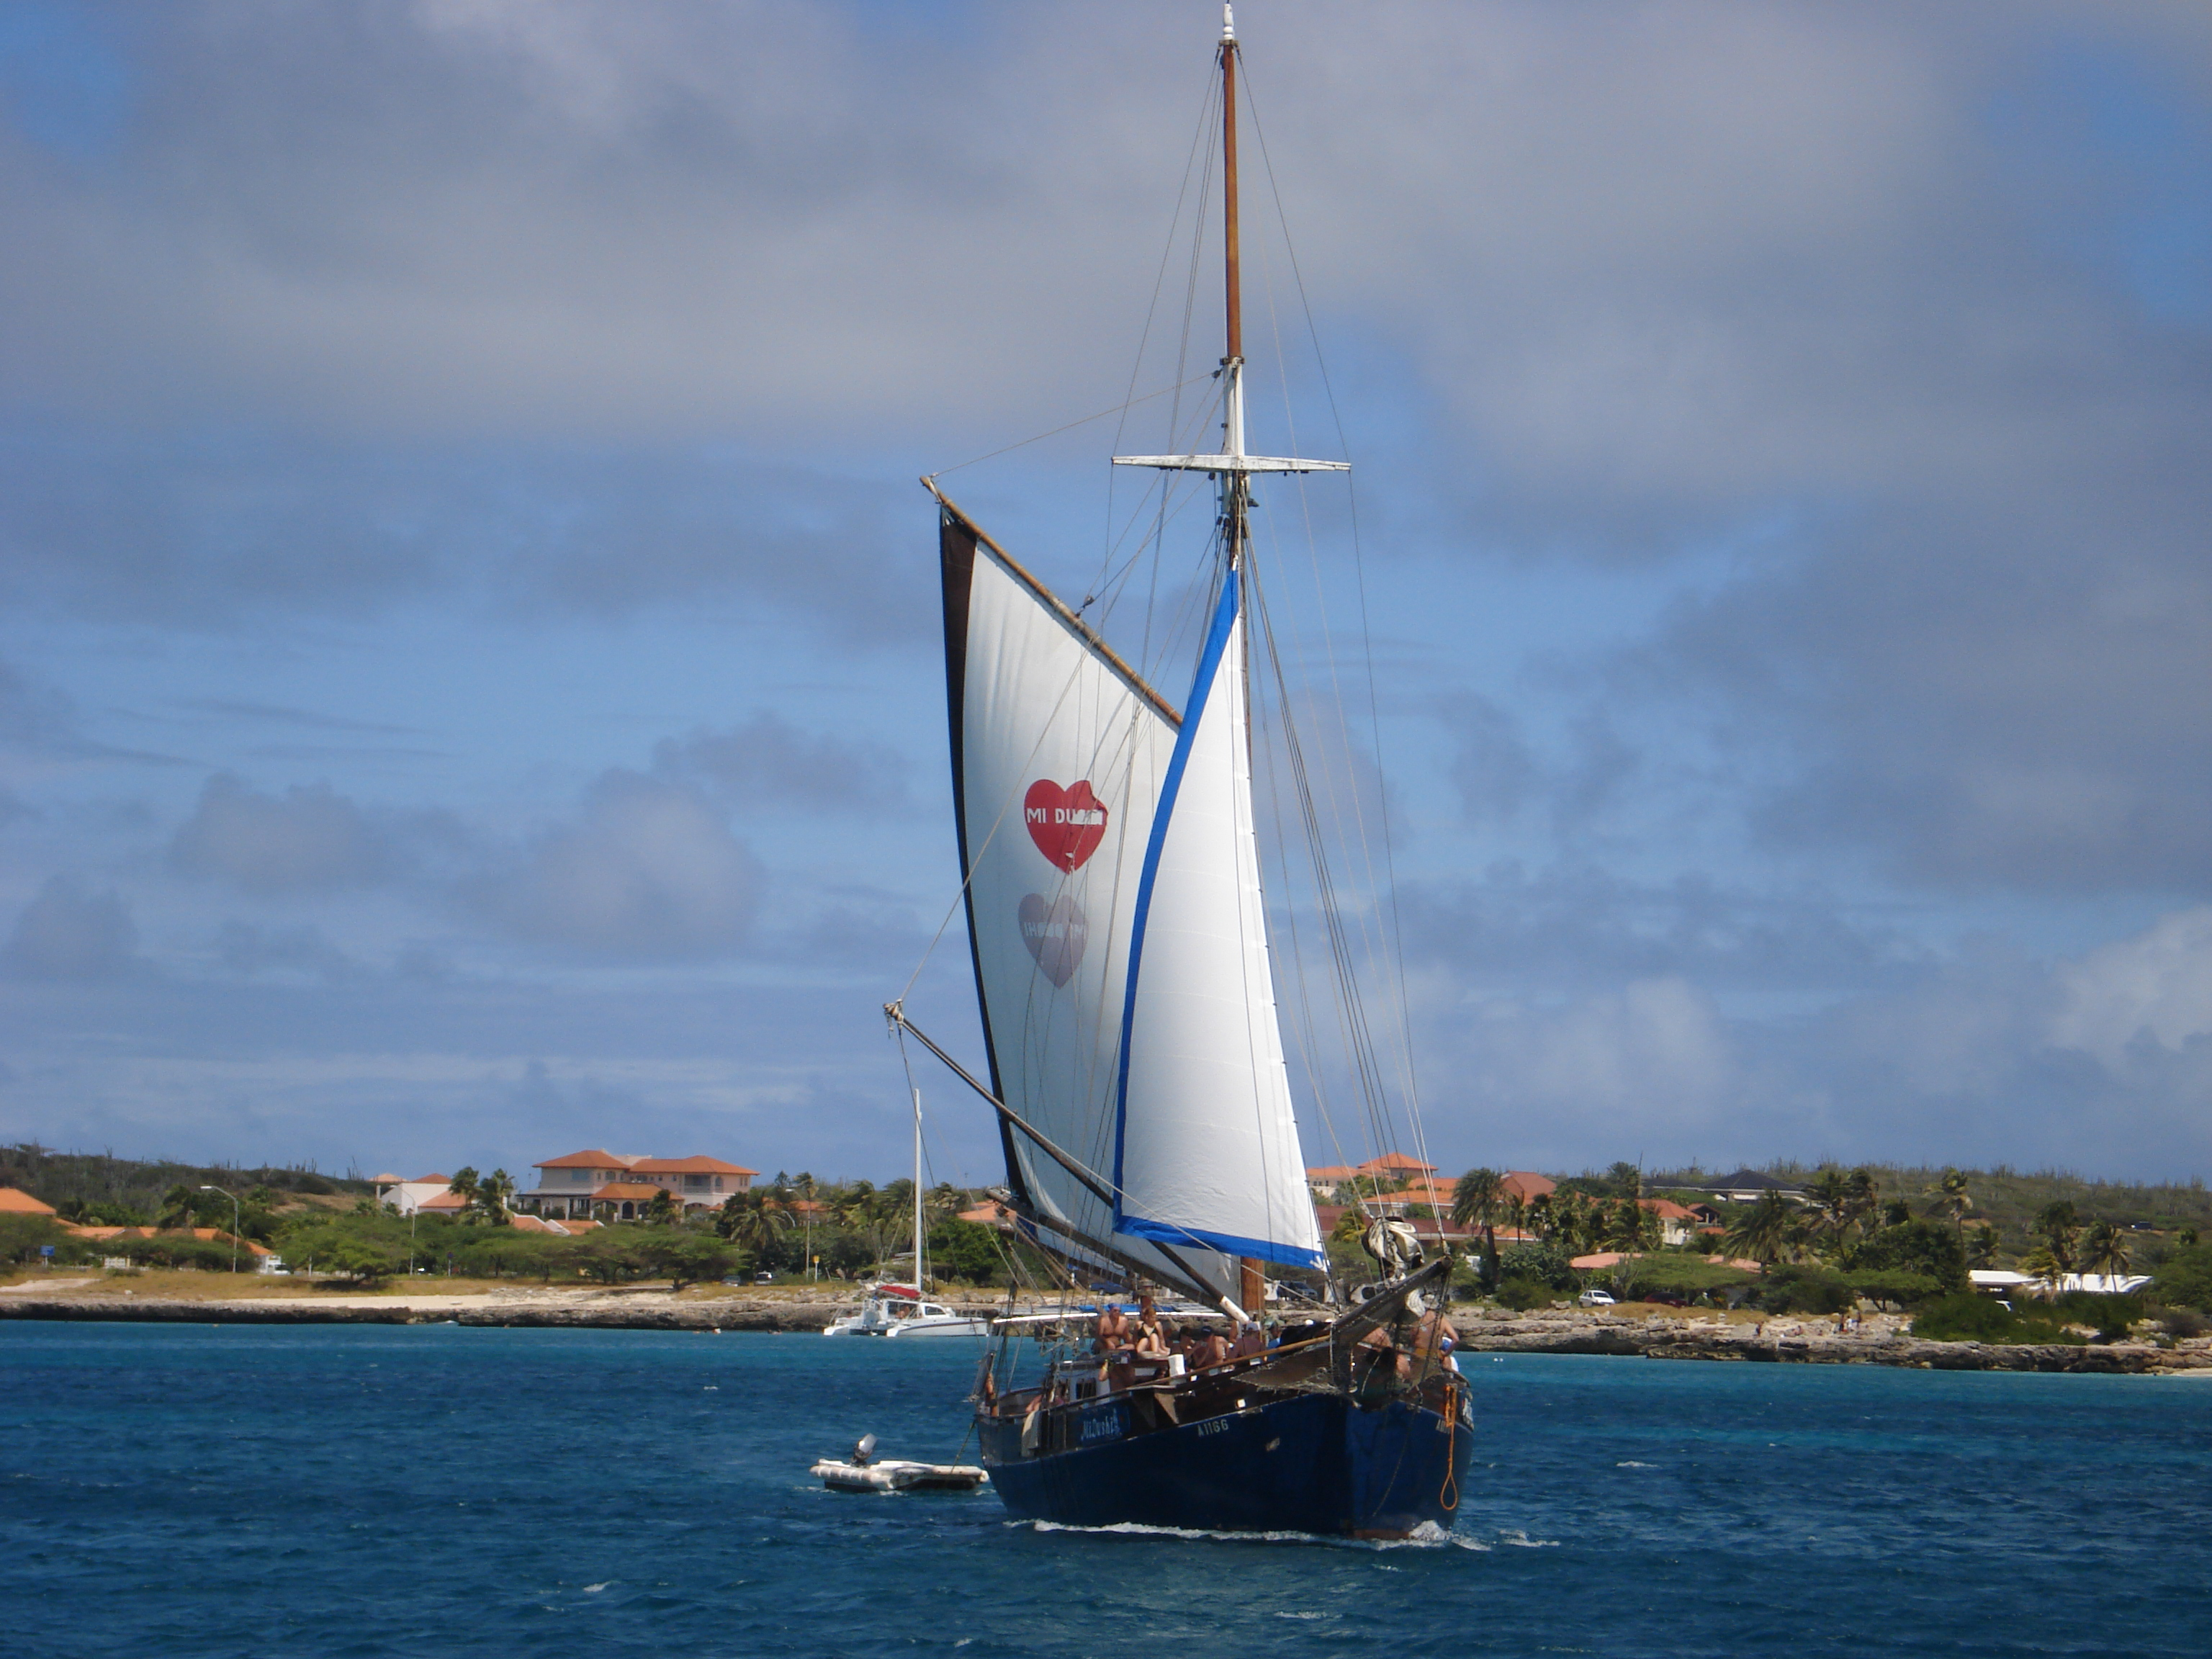 """Pirate ship"" in Aruba"